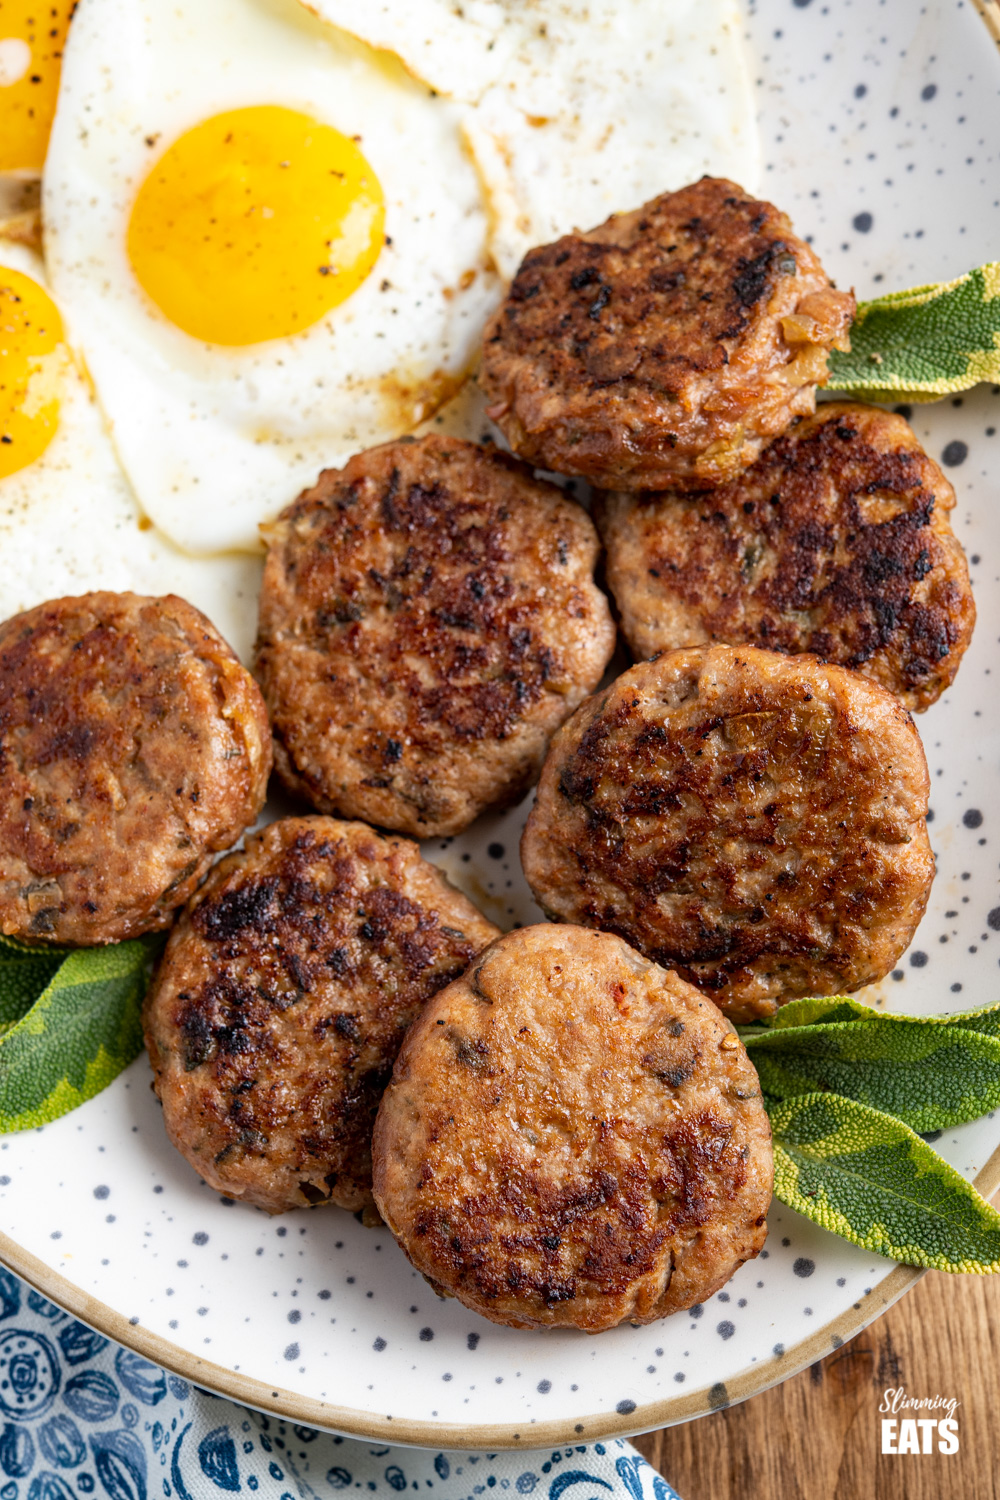 close up of oval speckled plate filled with homemade turkey breakfast sausage patties and fried eggs